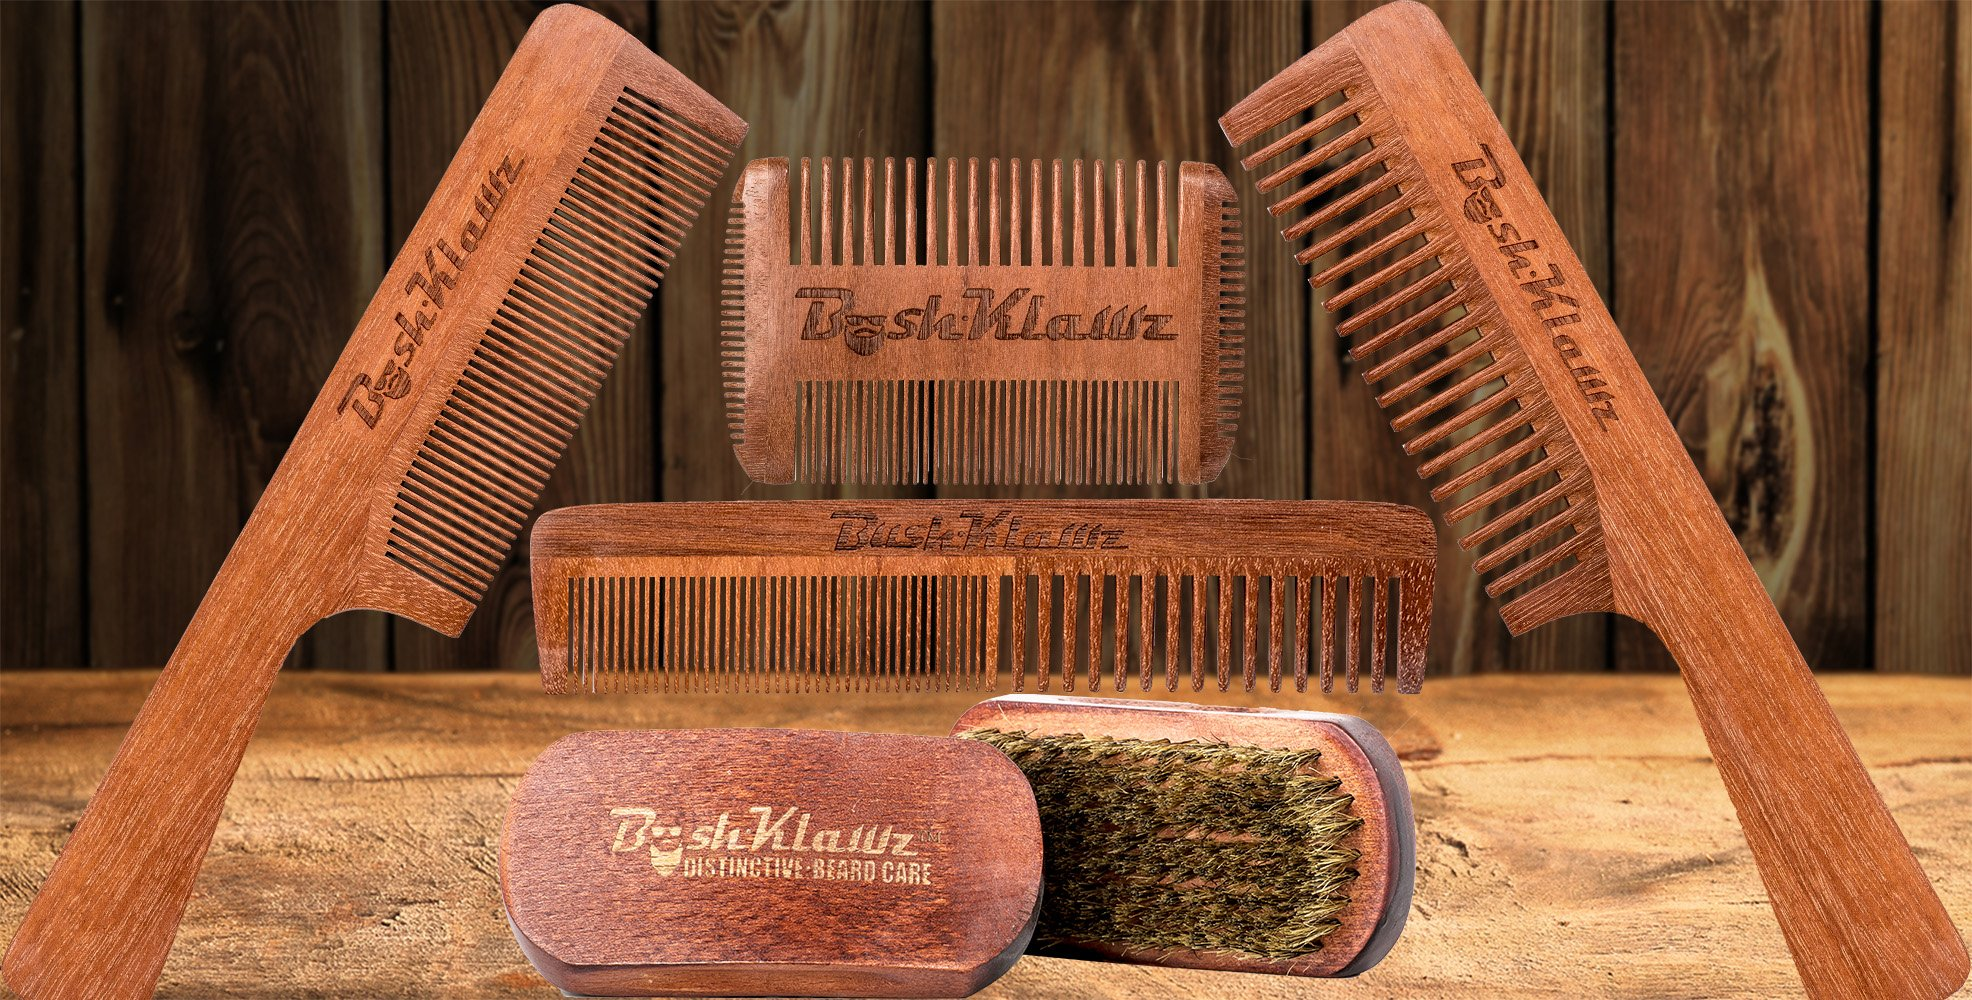 2Klawz Hair Comb for Men - Hair and Beard Comb with Wide and Fine Teeth Full Size 7'' Combination Comb - Best Man Comb Grooming Gift Special Gift For Mens comb Clark Kent Comb by BushKlawz (Image #4)